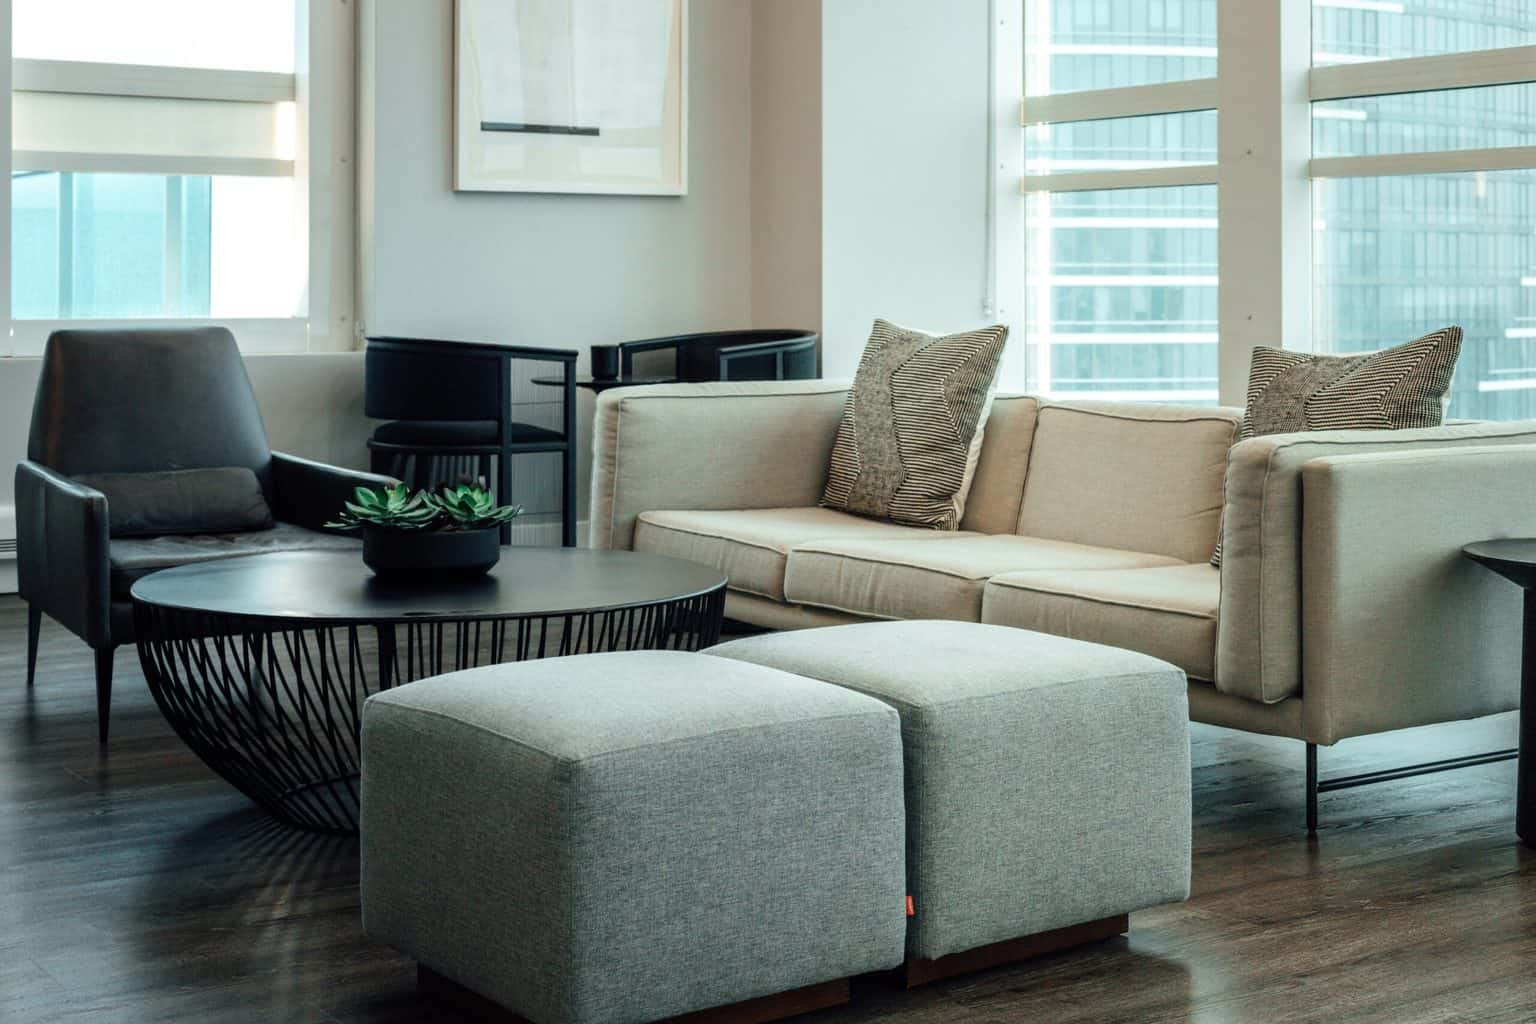 Living room furniture with a round table